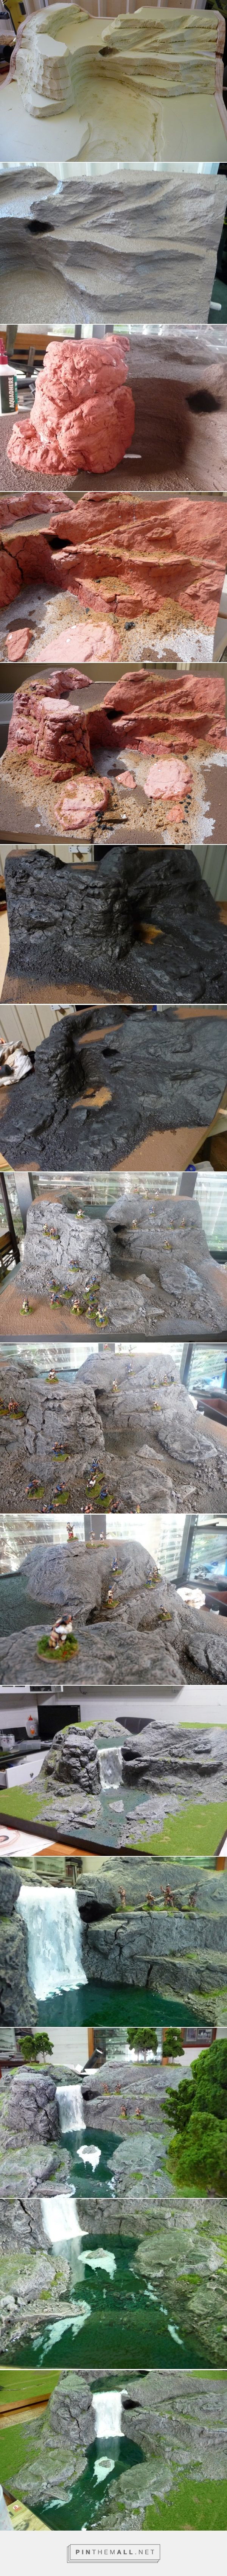 forum-eng.studio-tomahawk.com • View topic - 4ground buildings and WIP terrain http://studiotomahawk.freeforums.org/4ground-buildings-and-wip-terrain-t3007-30.html - created via http://pinthemall.net